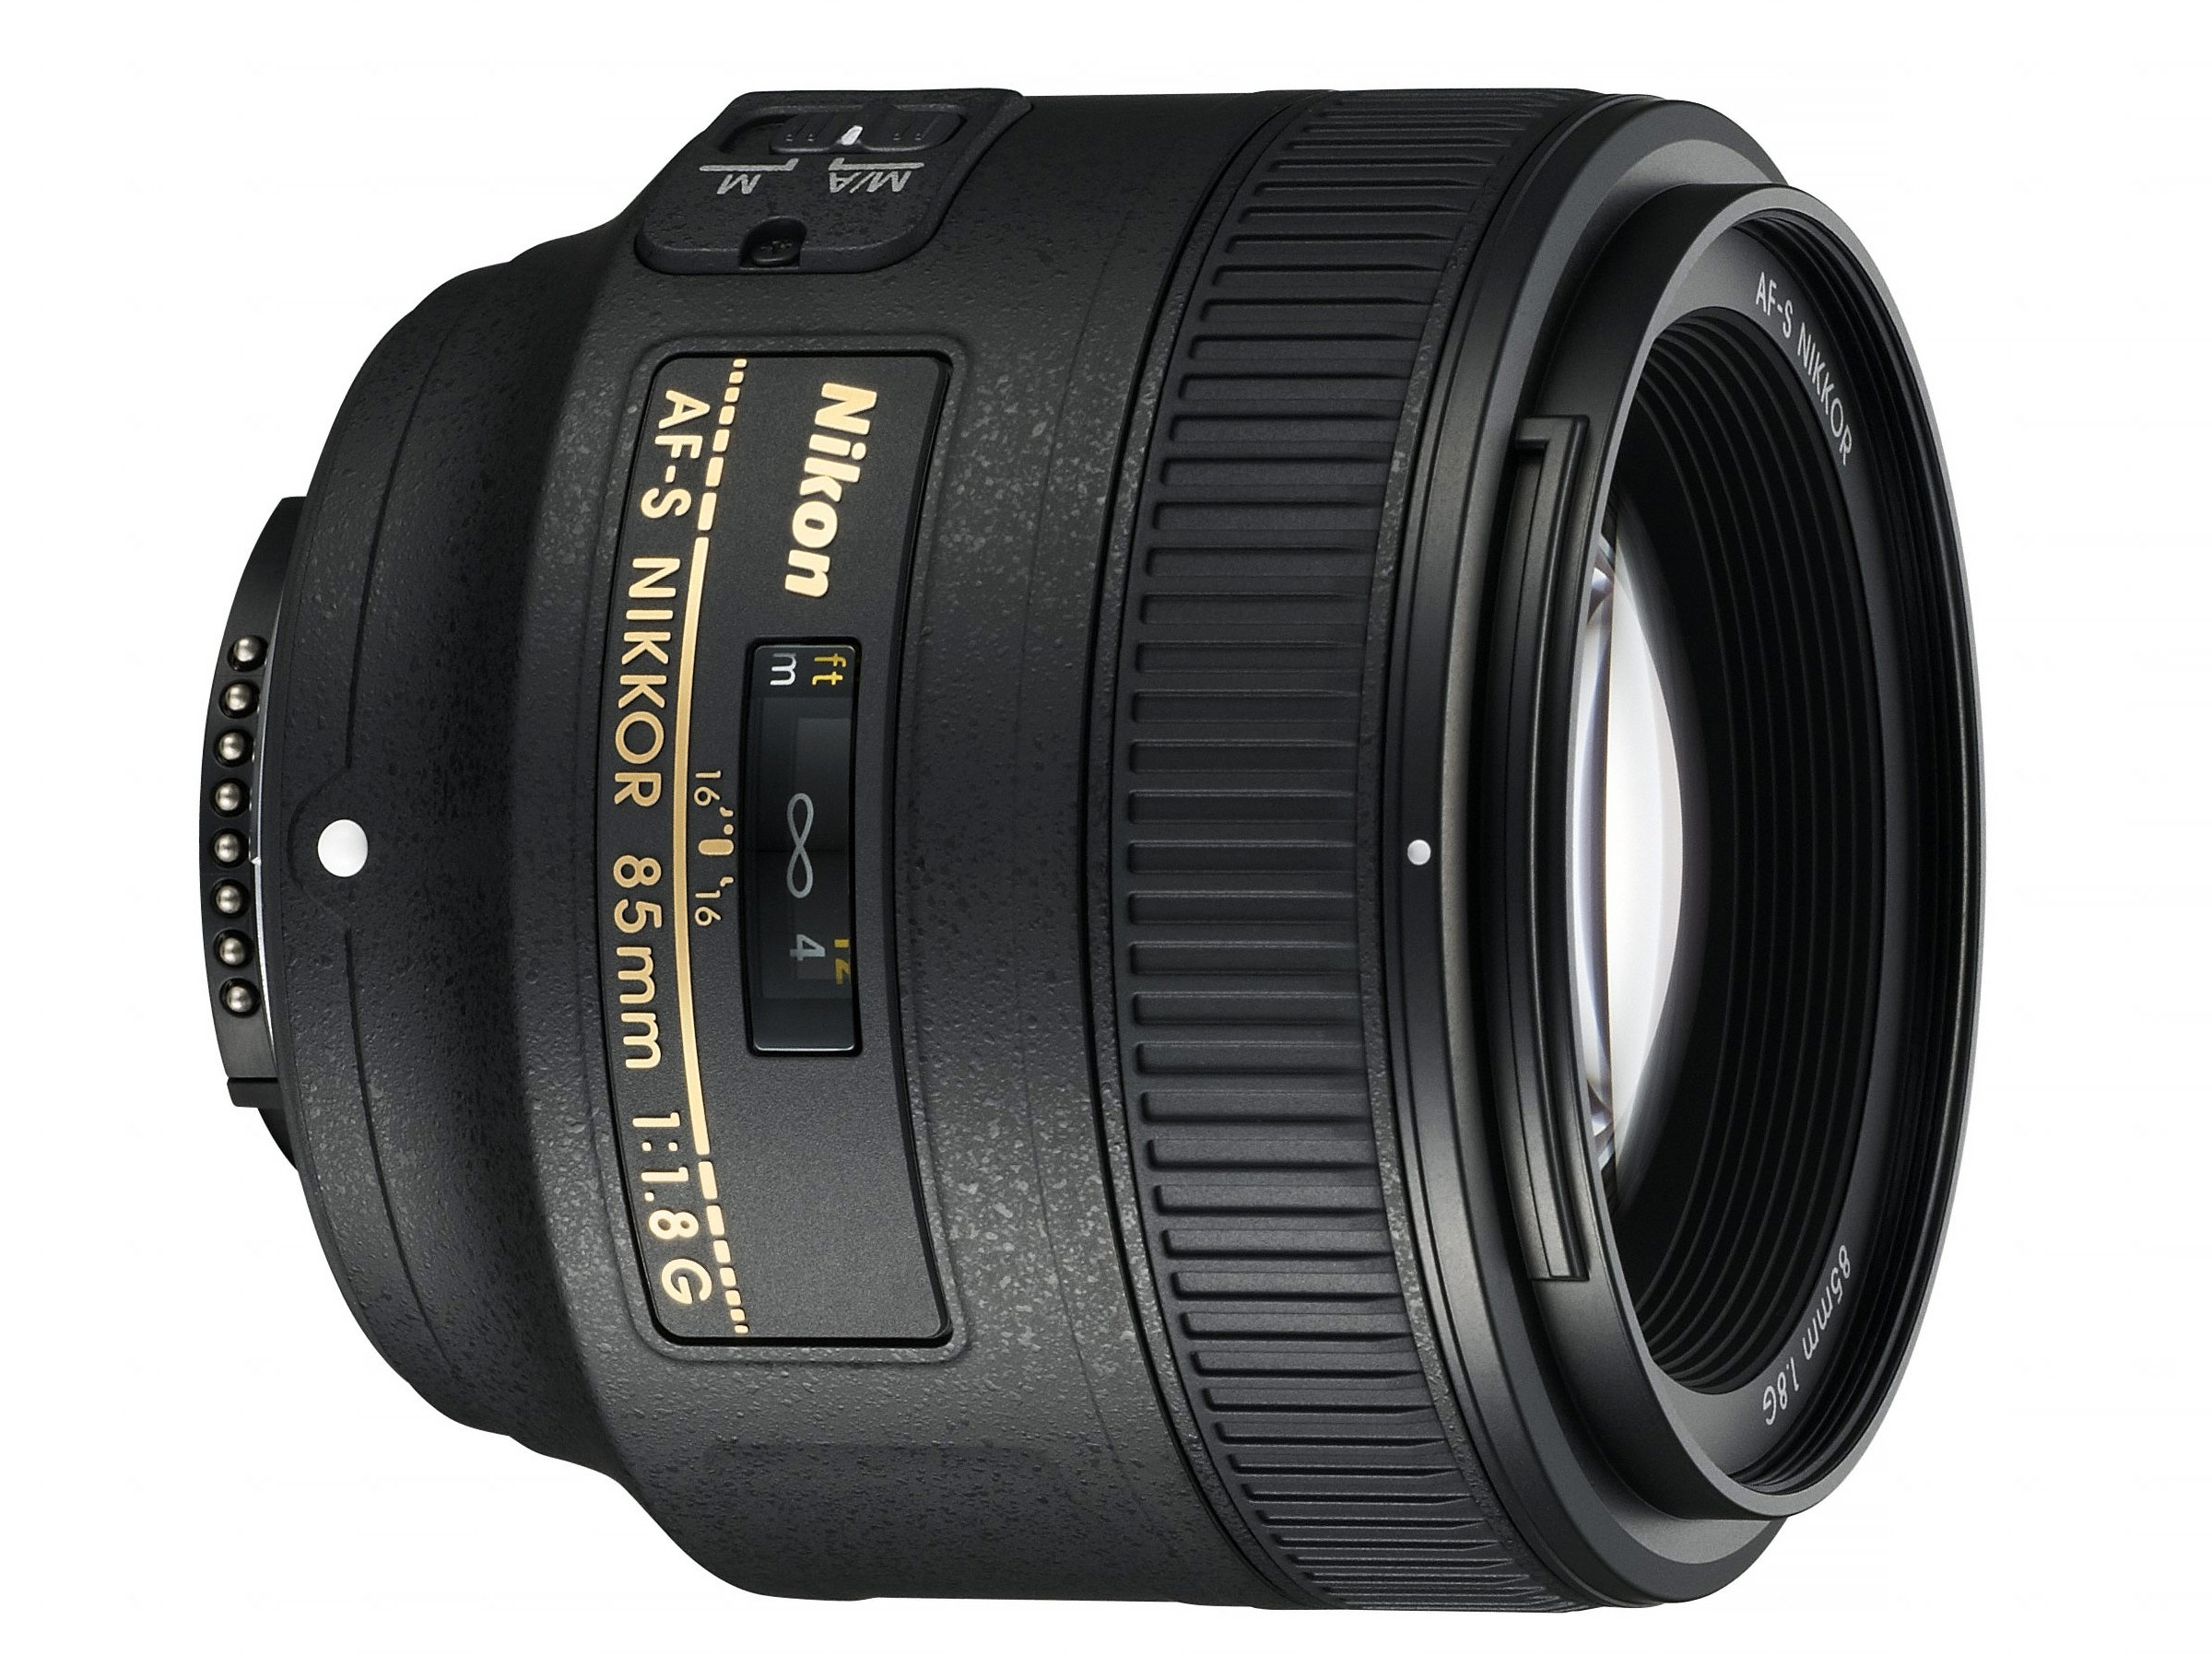 Nikon Af S 85mm F 18 G Specifications And Opinions Juzaphoto Lens Hood Flower 67mm Canon Fujifilm 135mm Sony 200mm 105mm